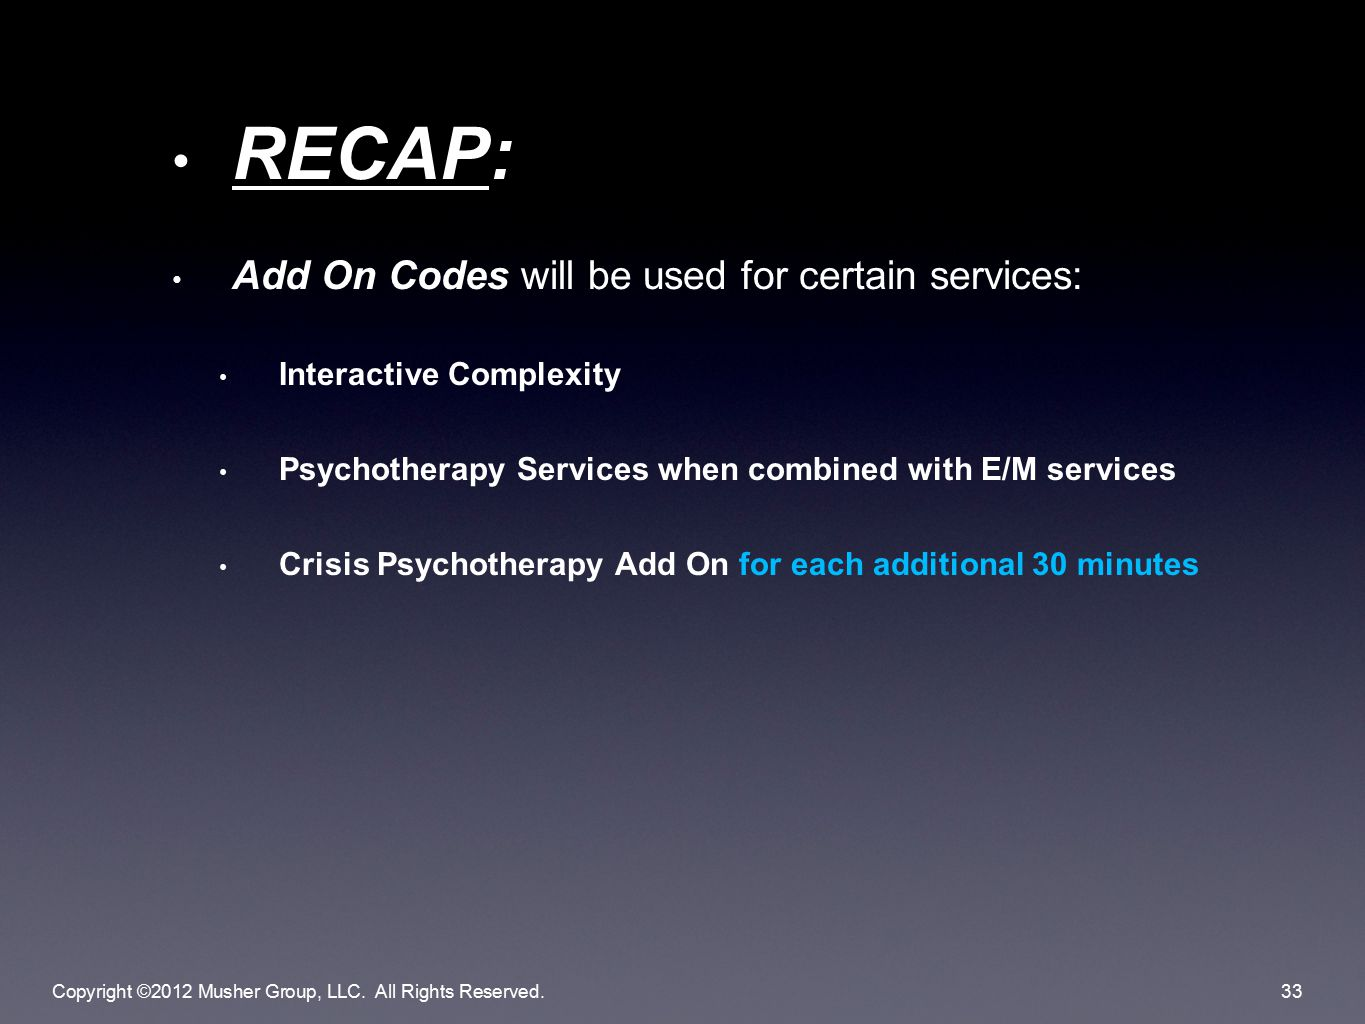 RECAP: Add On Codes will be used for certain services: Interactive Complexity Psychotherapy Services when combined with E/M services Crisis Psychotherapy Add On for each additional 30 minutes Copyright ©2012 Musher Group, LLC.